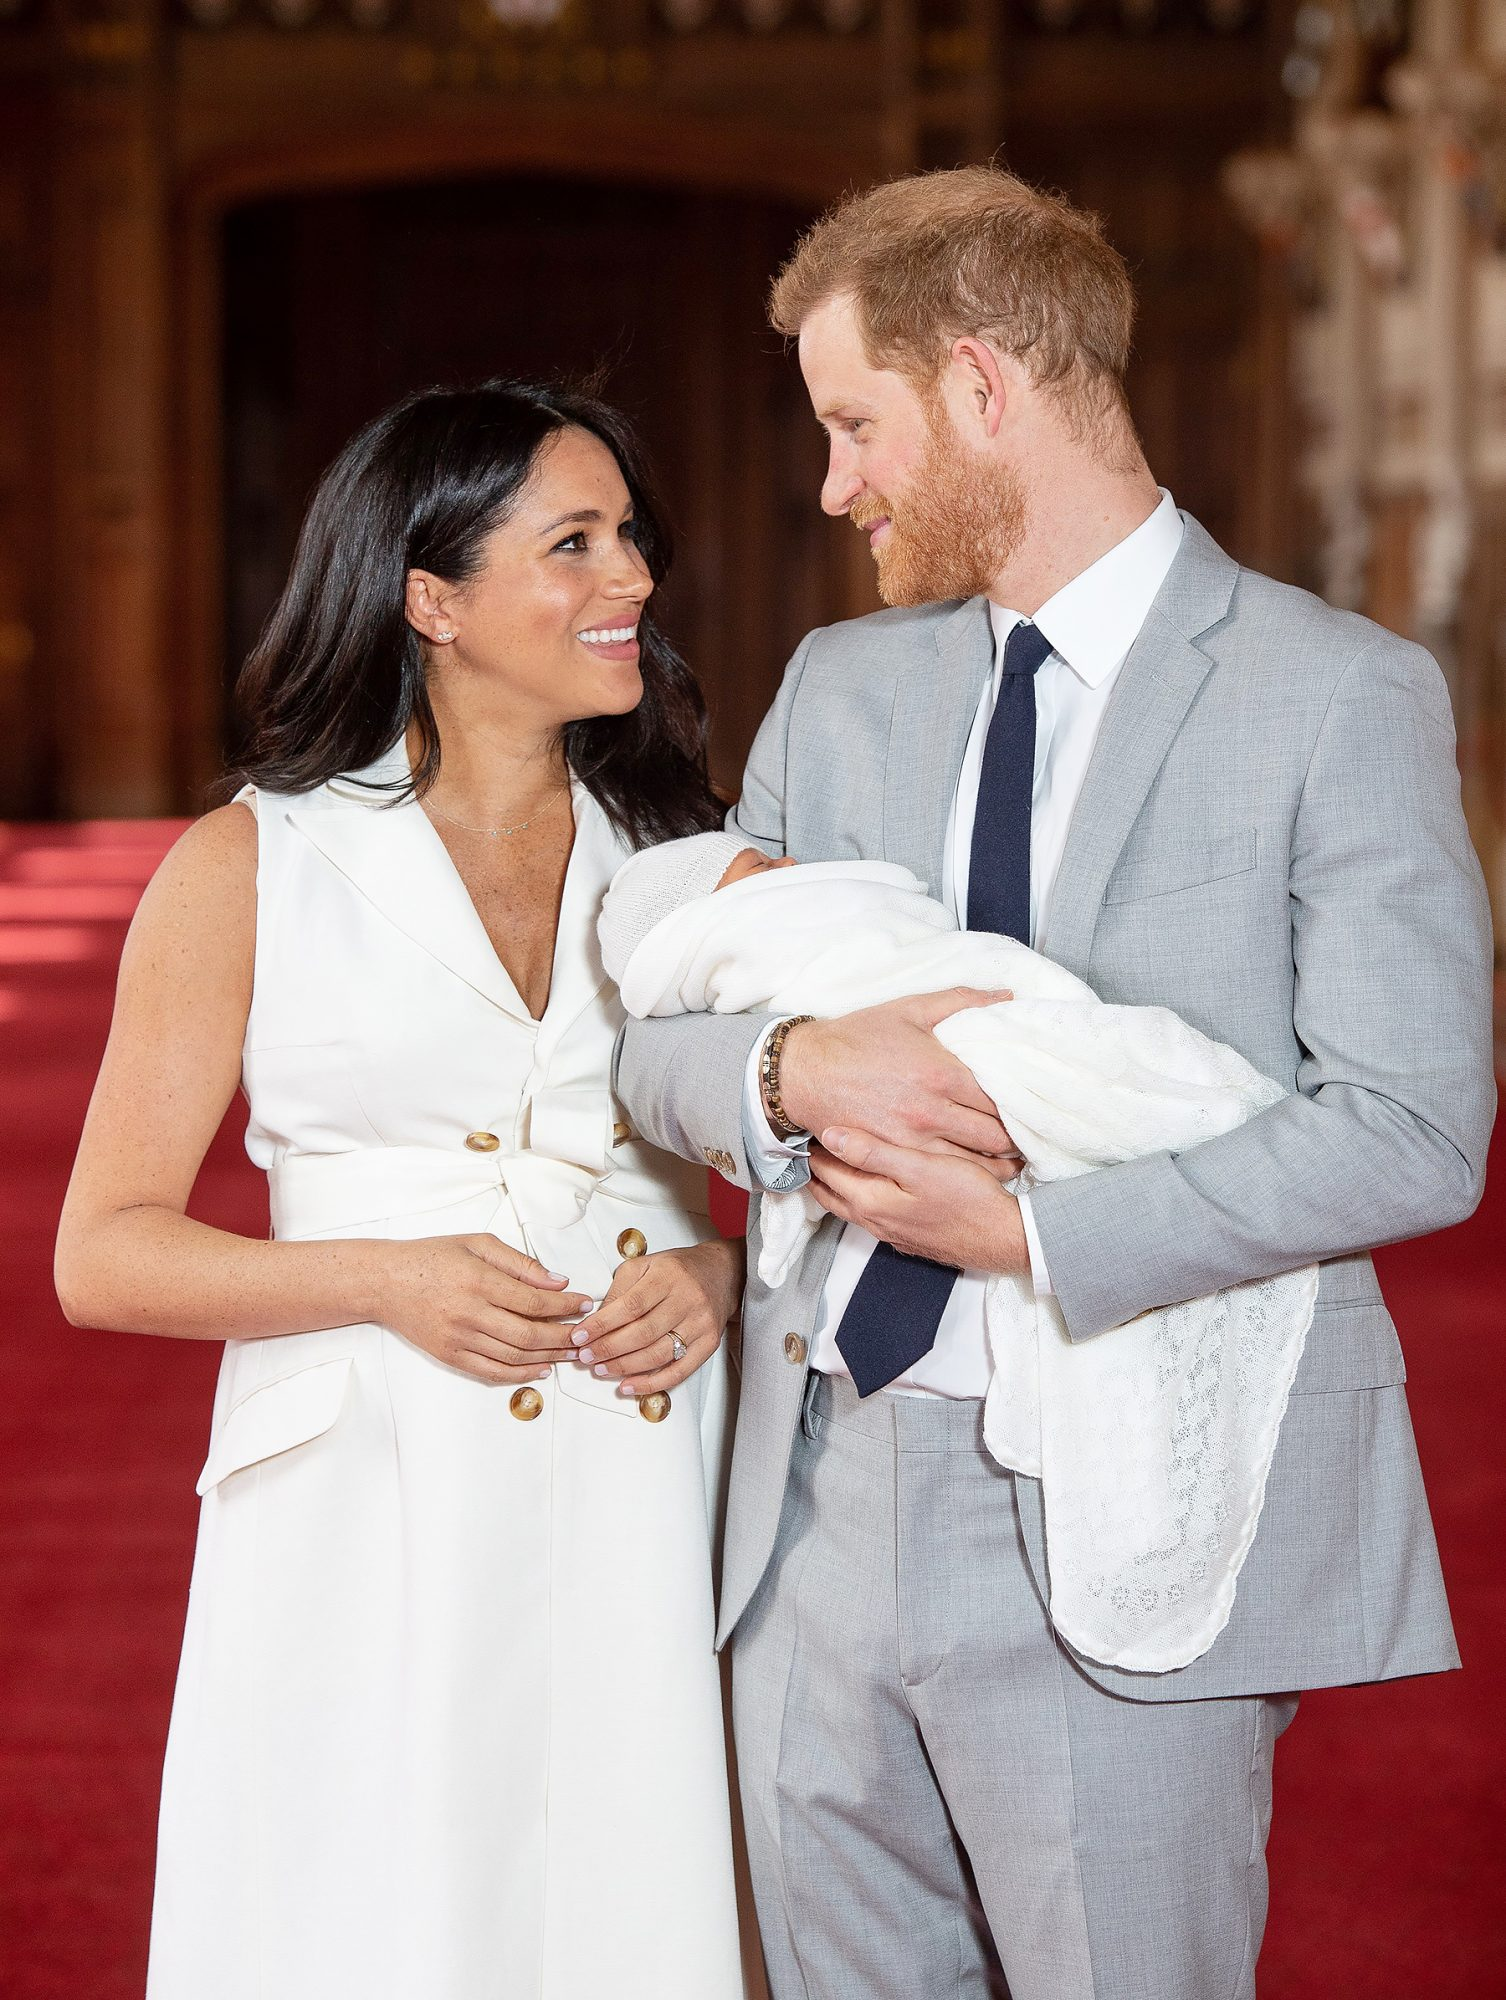 Britain's Prince Harry, Duke of Sussex (R), and his wife Meghan, Duchess of Sussex, pose for a photo with their newborn baby son in St George's Hall at Windsor Castle in Windsor, west of London on May 8, 2019. (Photo by Dominic Lipinski / POOL / AFP) (Photo credit should read DOMINIC LIPINSKI/AFP/Getty Images)